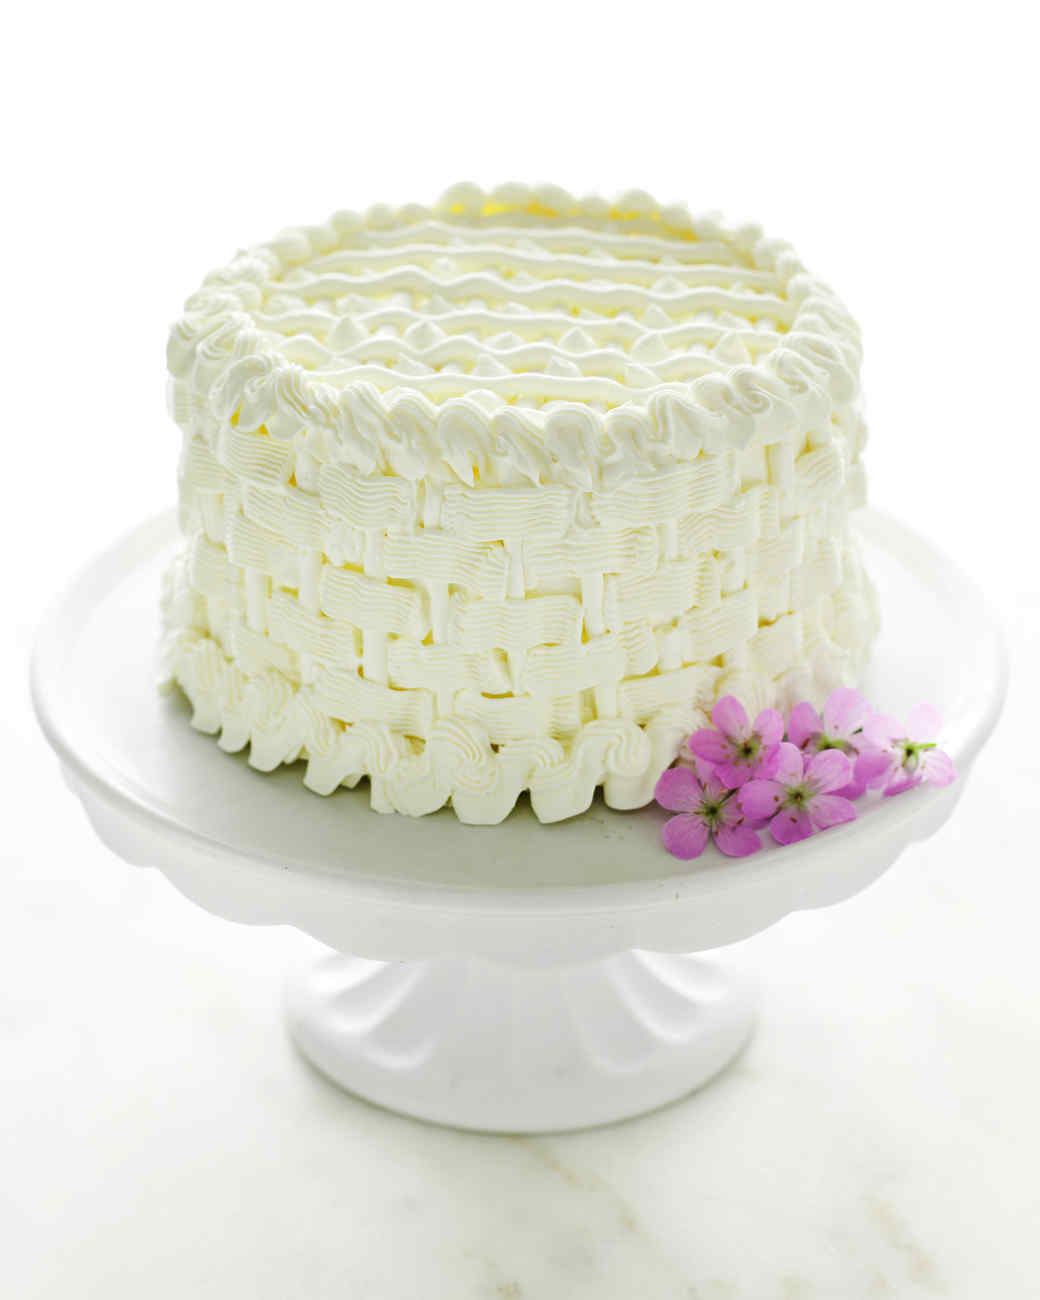 Martha Stewart Cake Decorating Icing : Orange-Almond Cake with Buttercream Frosting